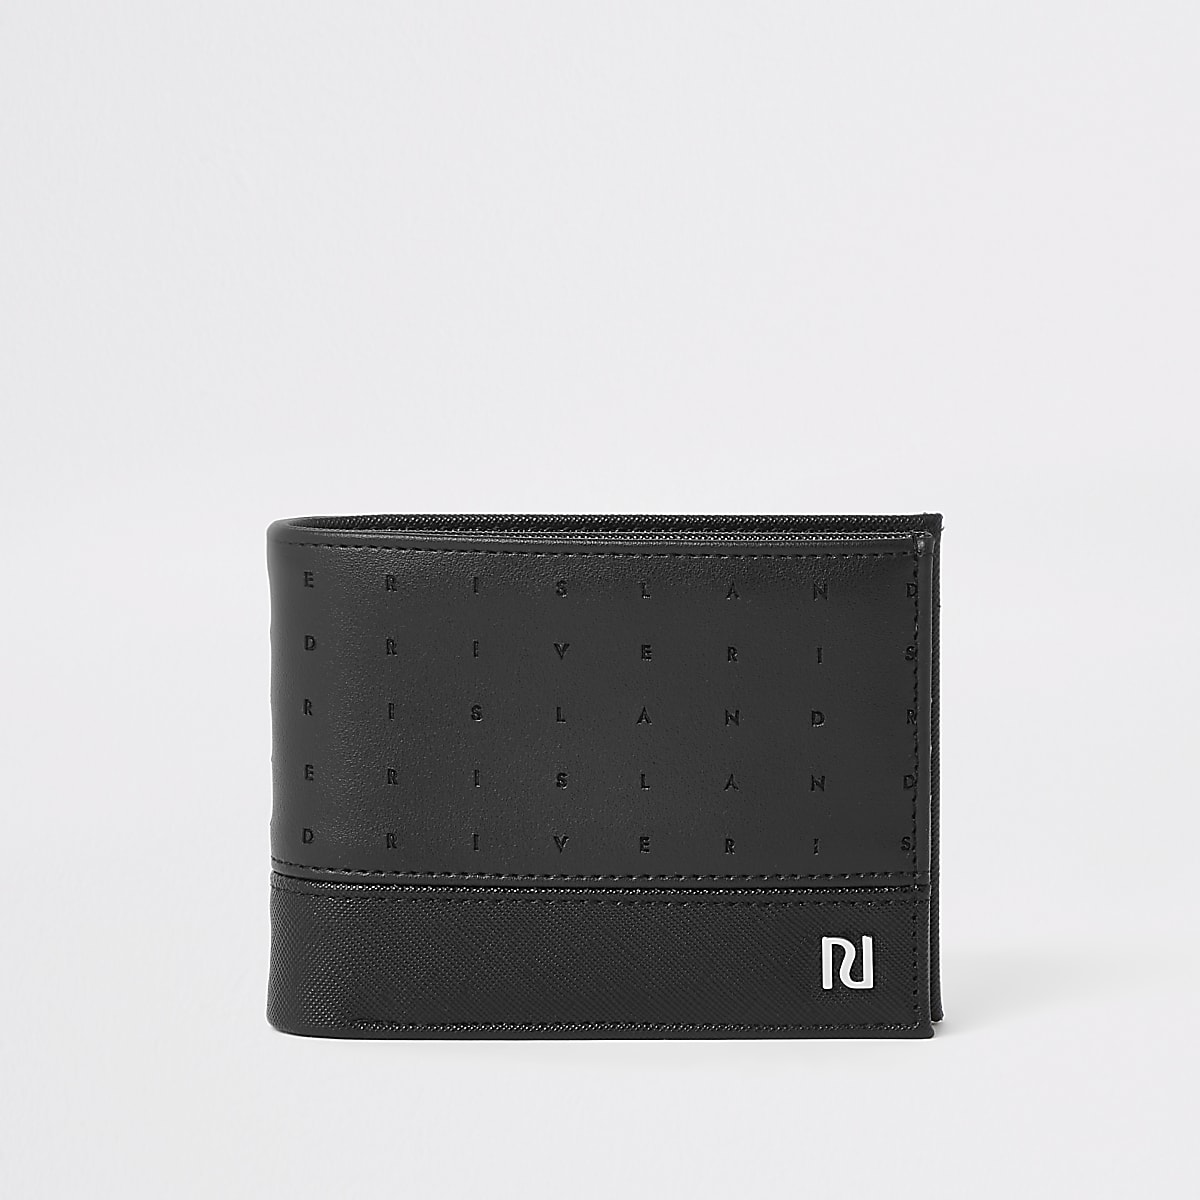 Black RI wallet